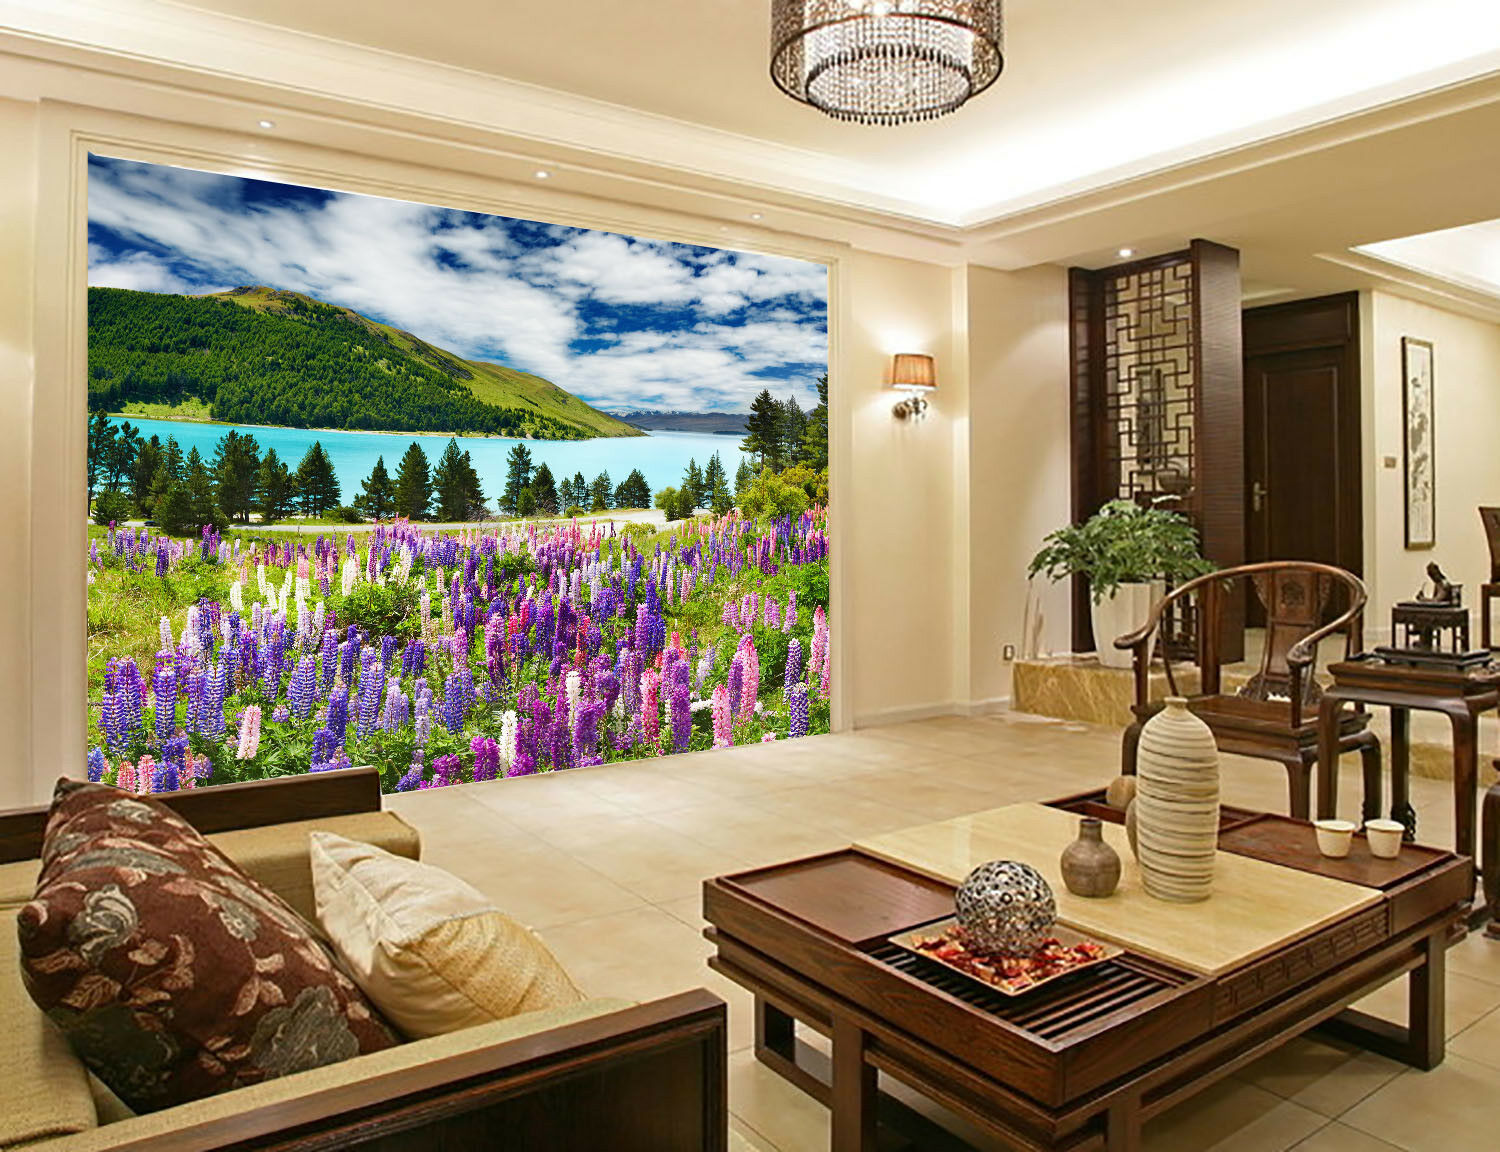 3D Lavender Sky River 5 Wall Paper Wall Print Decal Wall Deco Indoor Mural Carly